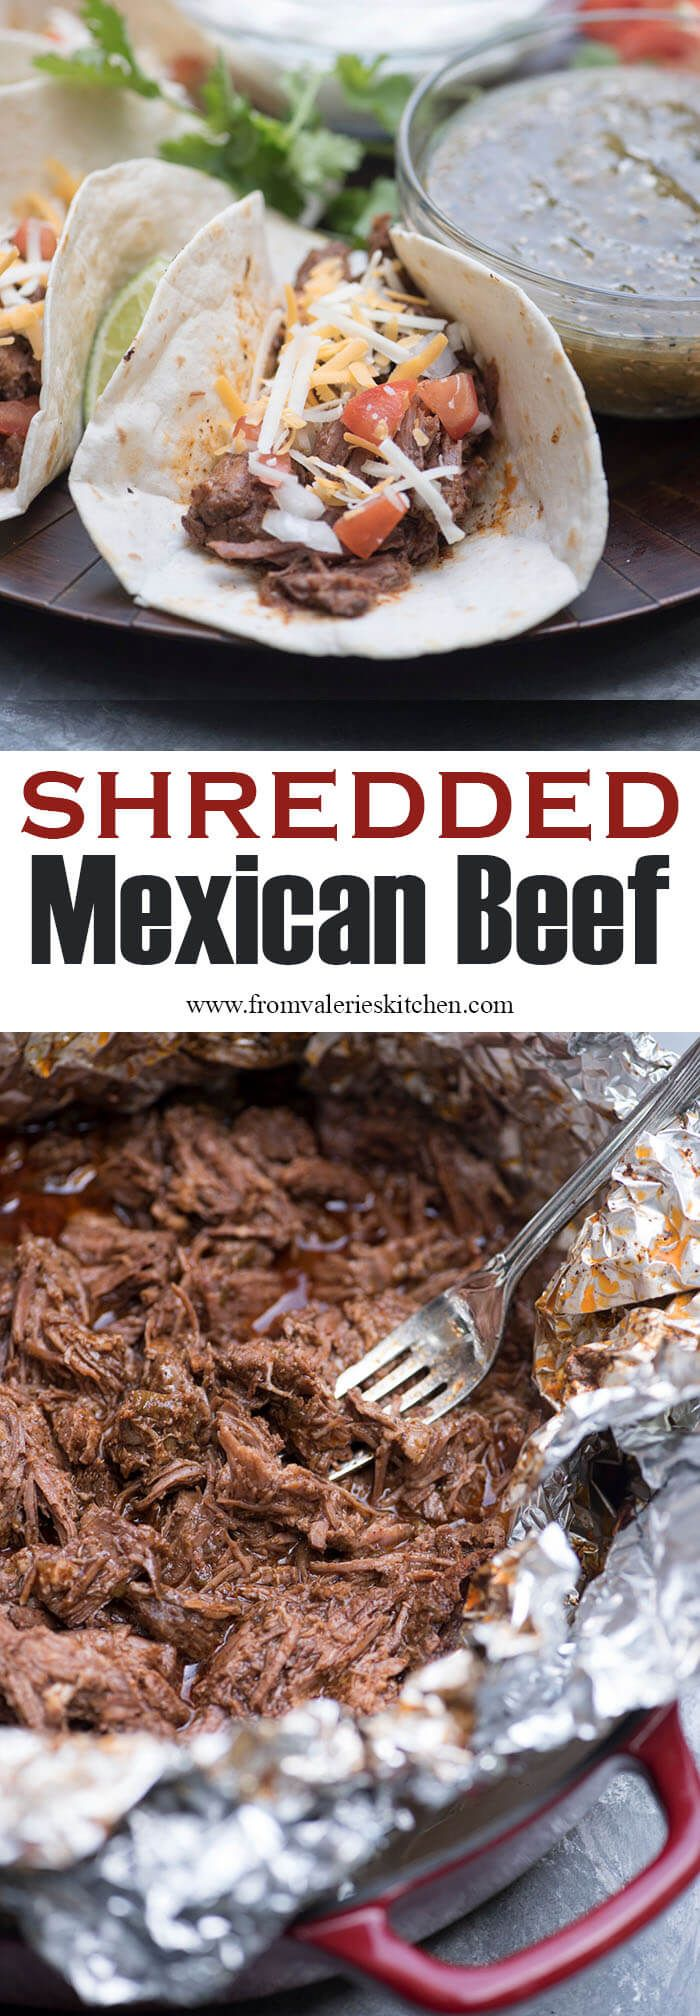 This tender and deliciously seasoned Shredded Mexican Beef can be used in a variety of Mexican-inspired dishes. It is super versatile and so easy to make!